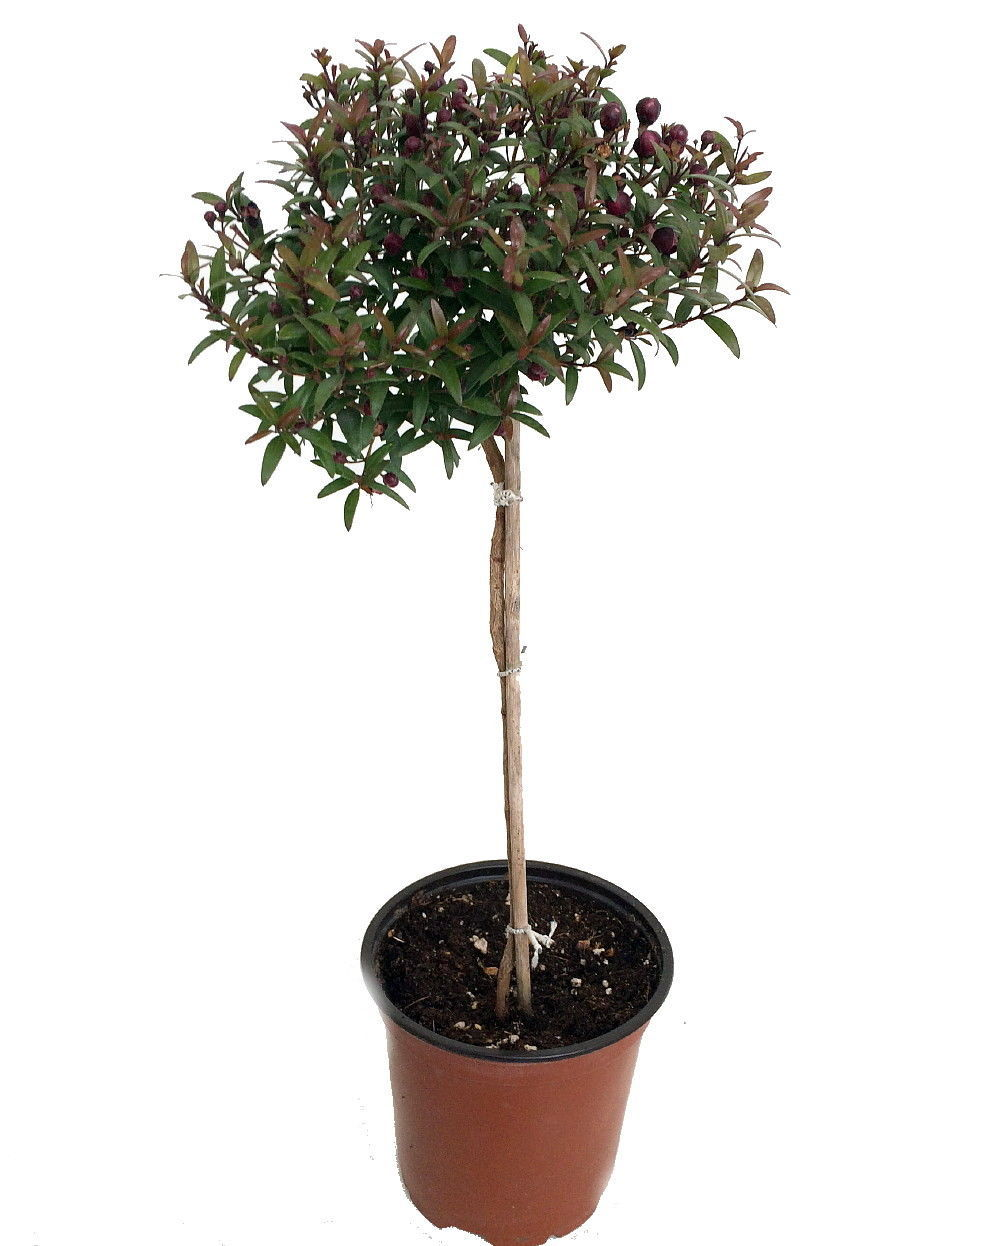 "Biblical Myrtle Herb Plant - Myrtus - Ancient Herb - 4.5"" Pot - Topiary"